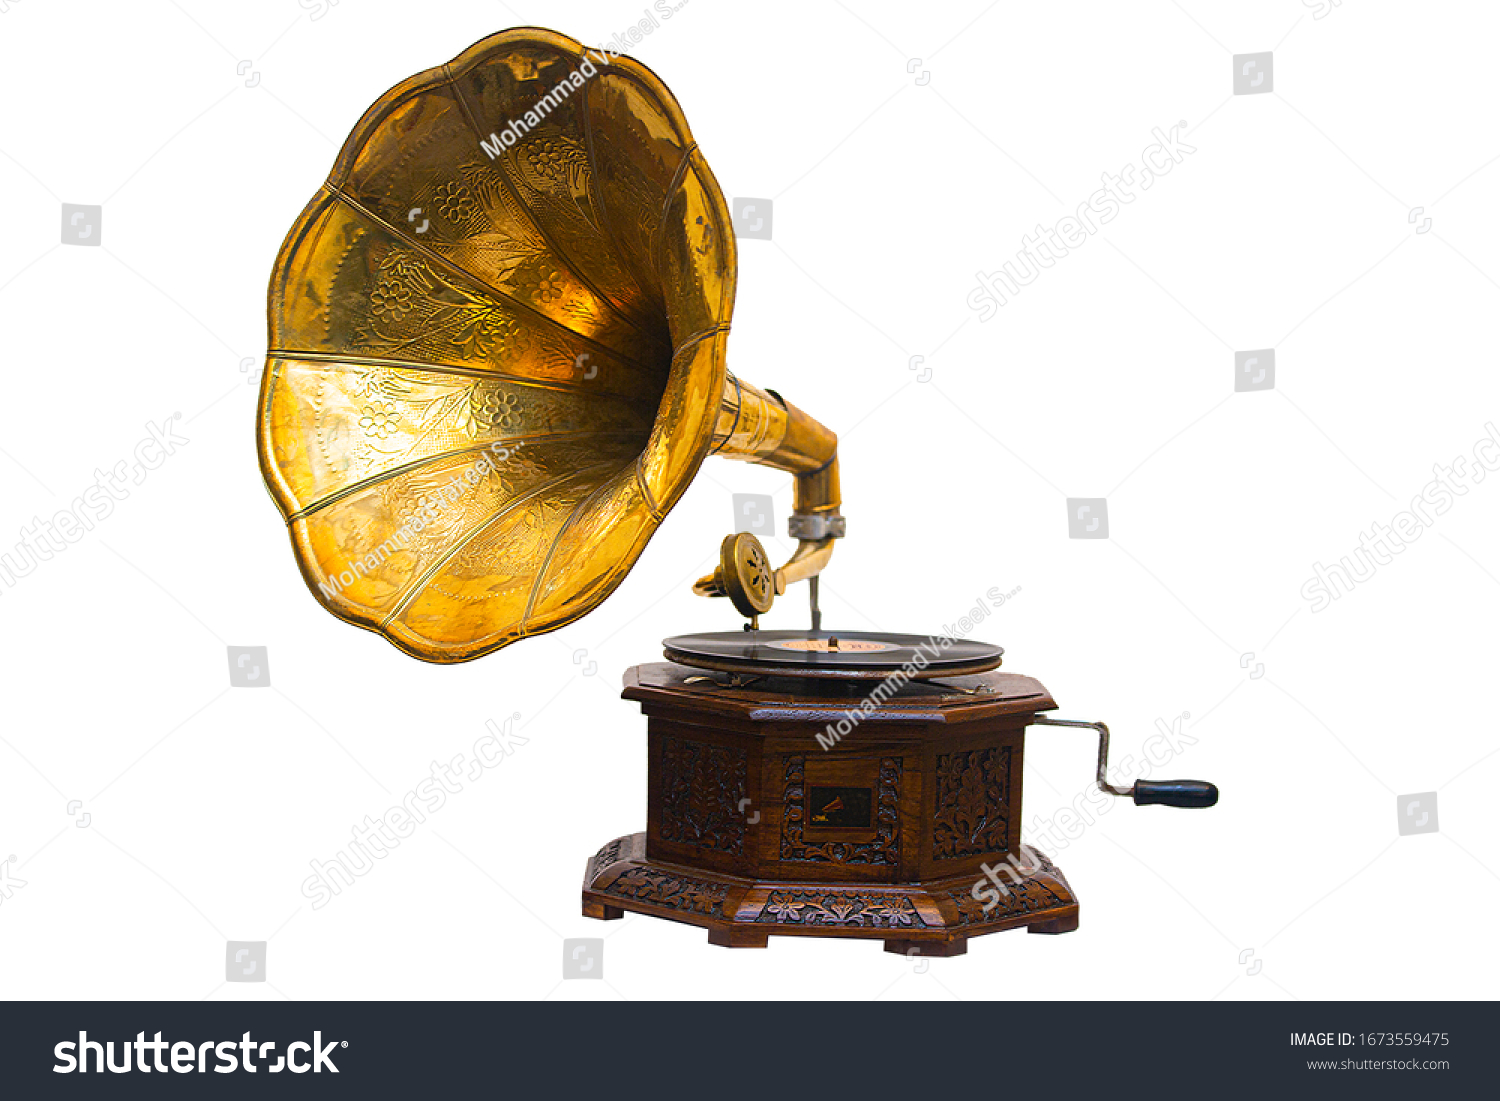 Old gramophone with plate or vinyl disk on wooden box isolated on white background. Antique brass record player.Gramophone with horn speaker. Retro entertainment concept.Gramophone is an Music device. #1673559475